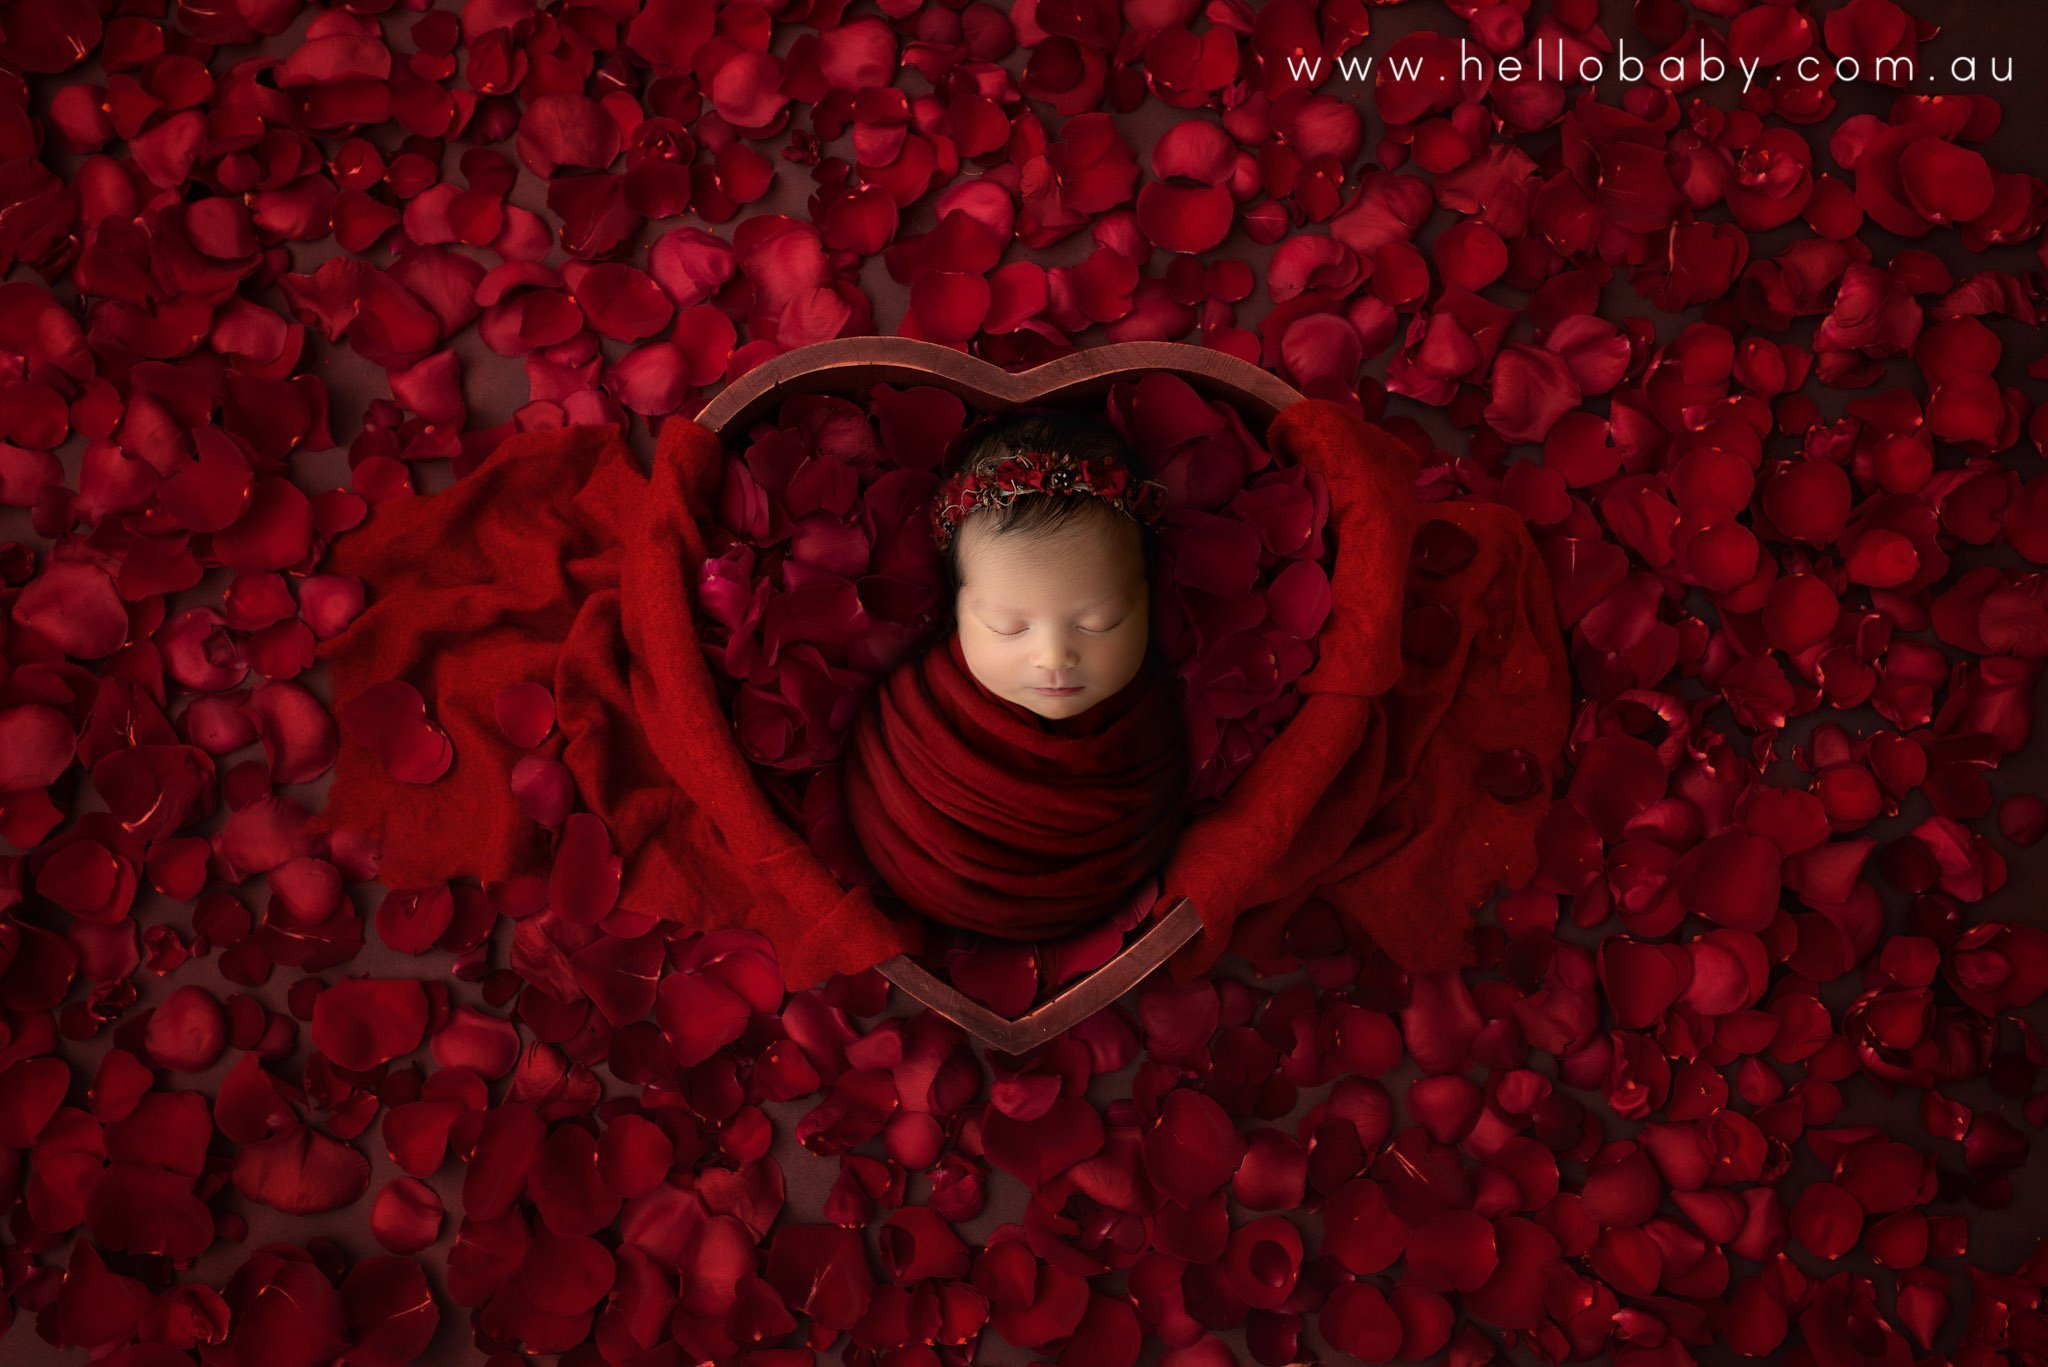 Baby girl wrapped in red in a heart shaped bowl surrounded by red rose petals